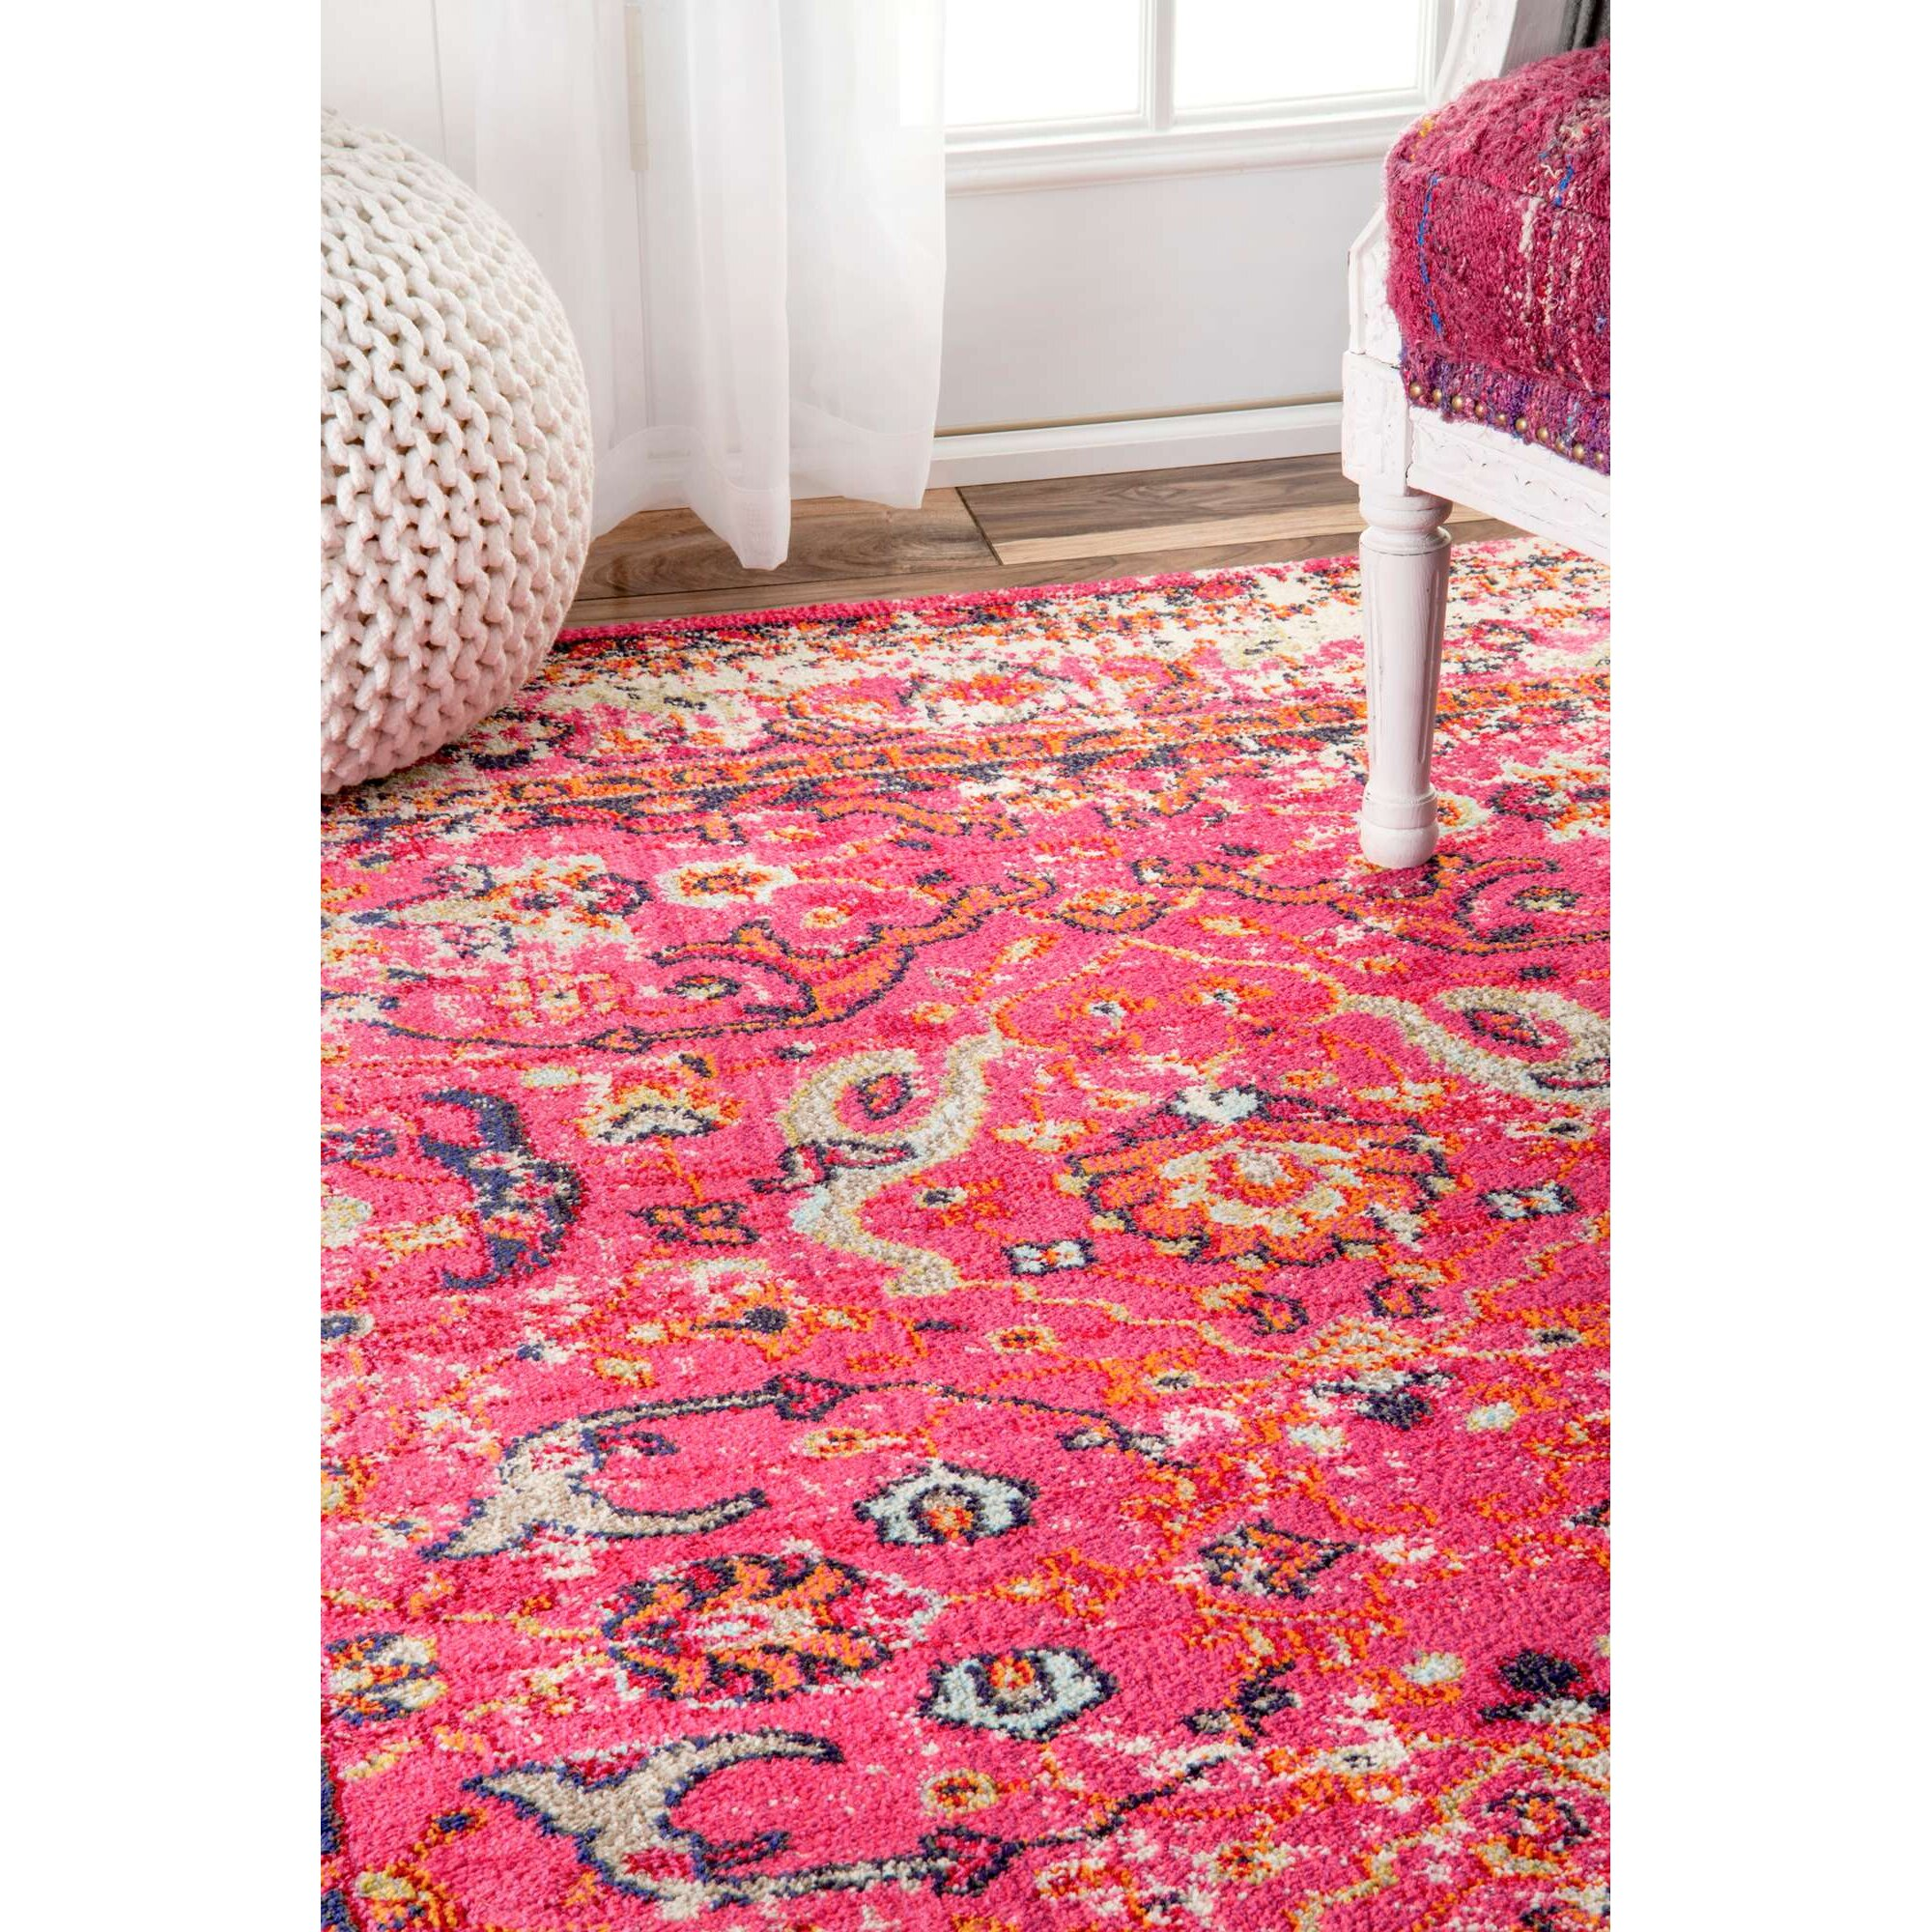 Bungalow Rose Hyer Pink Area Rug & Reviews  Wayfair. Nyc Room For Rent. Teens Room. European Decor. 50th Anniversary Party Decorations. Rudolph Christmas Decorations. Boy Birthday Decorations. Elle Decor Subscription. Ceiling Lights For Living Room